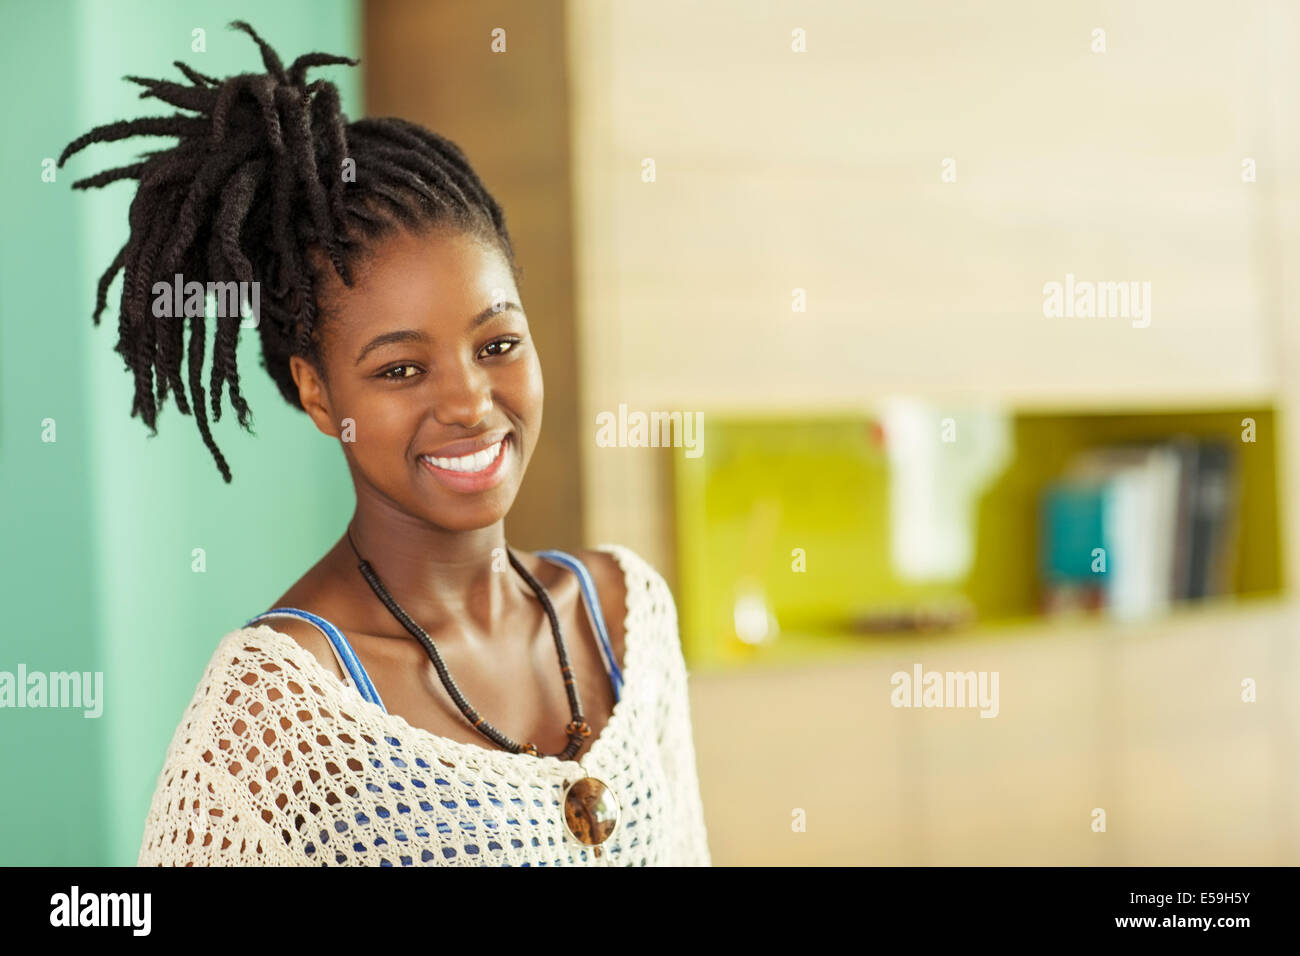 Woman smiling in office - Stock Image